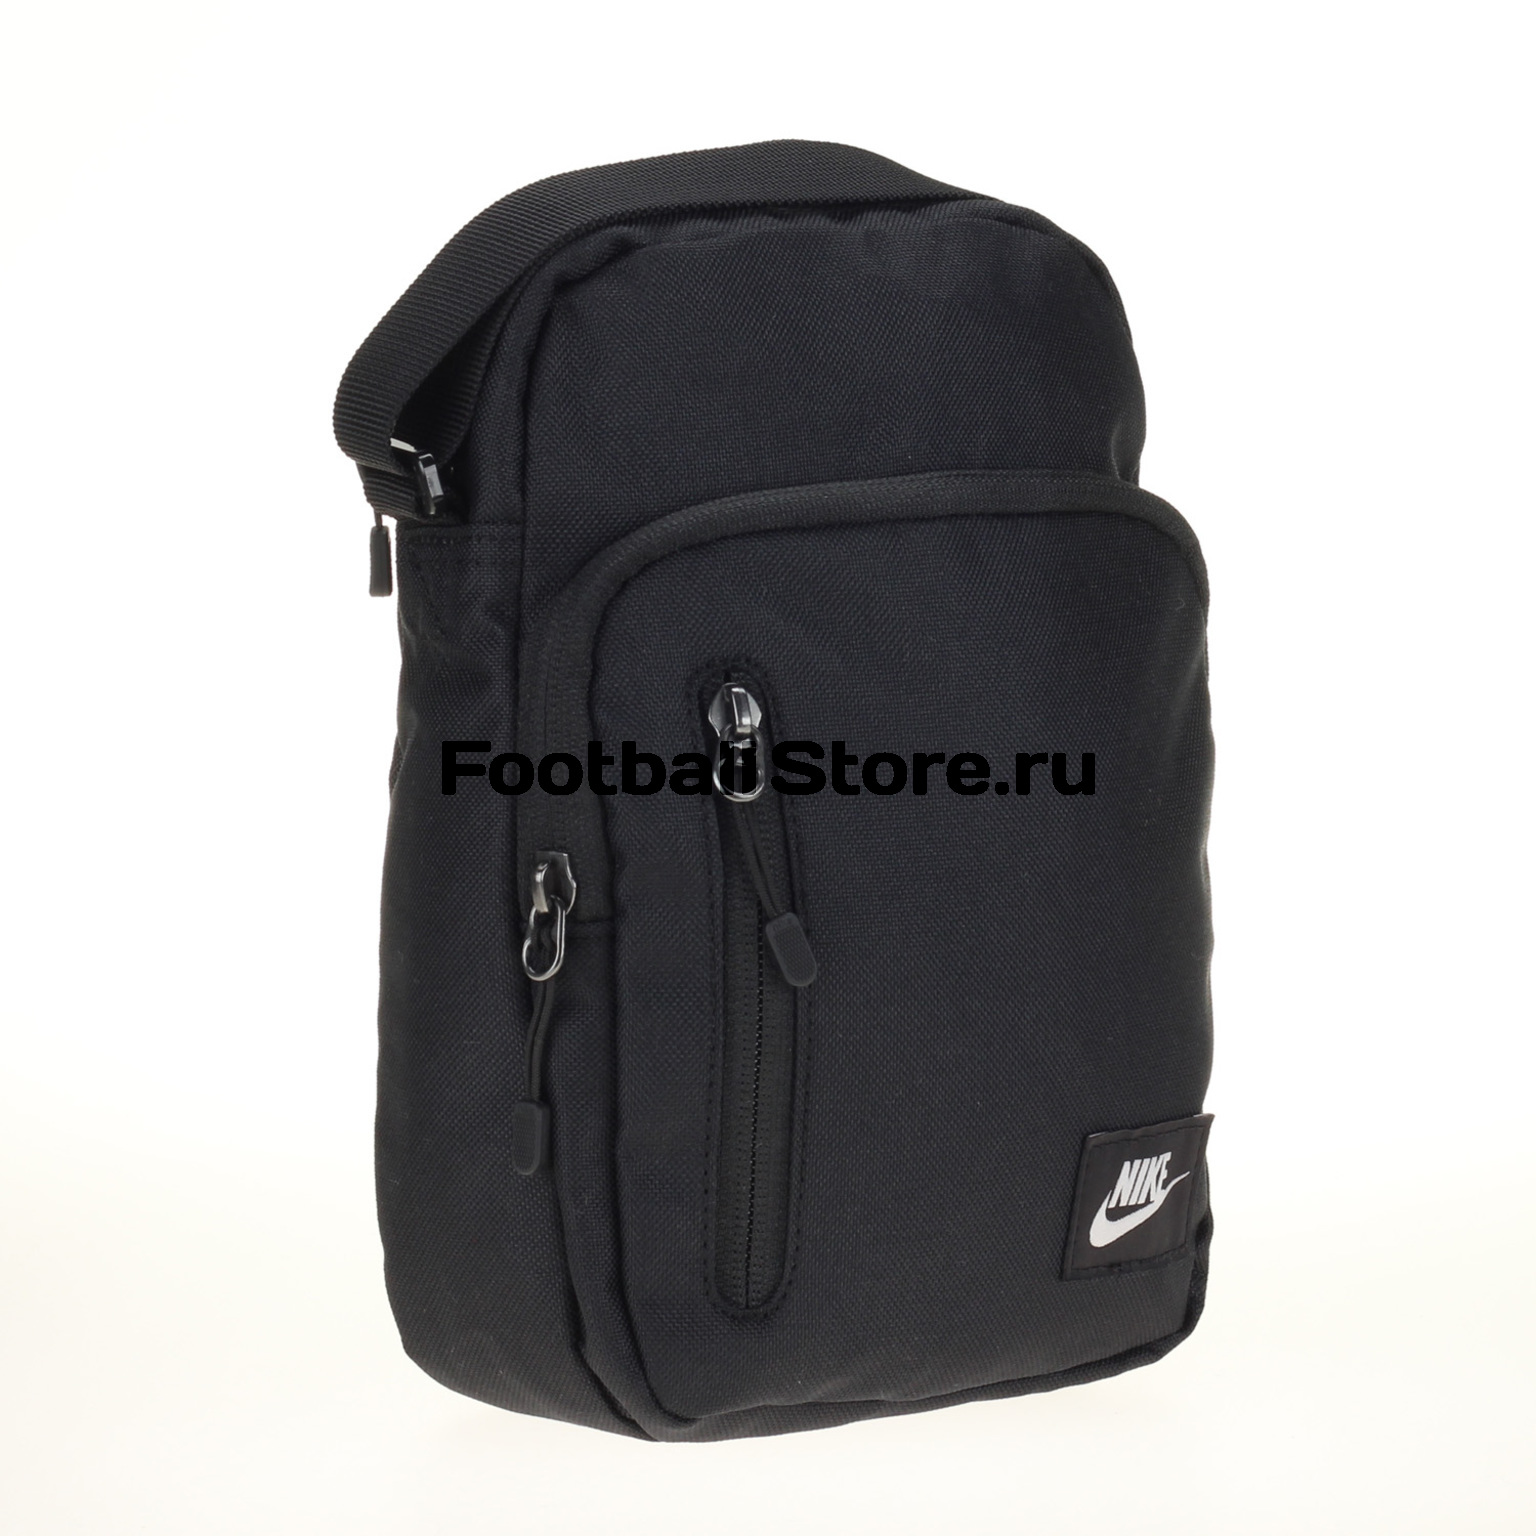 Сумки/Рюкзаки Nike Сумка Nike Core Small items II Bag BA4293-067